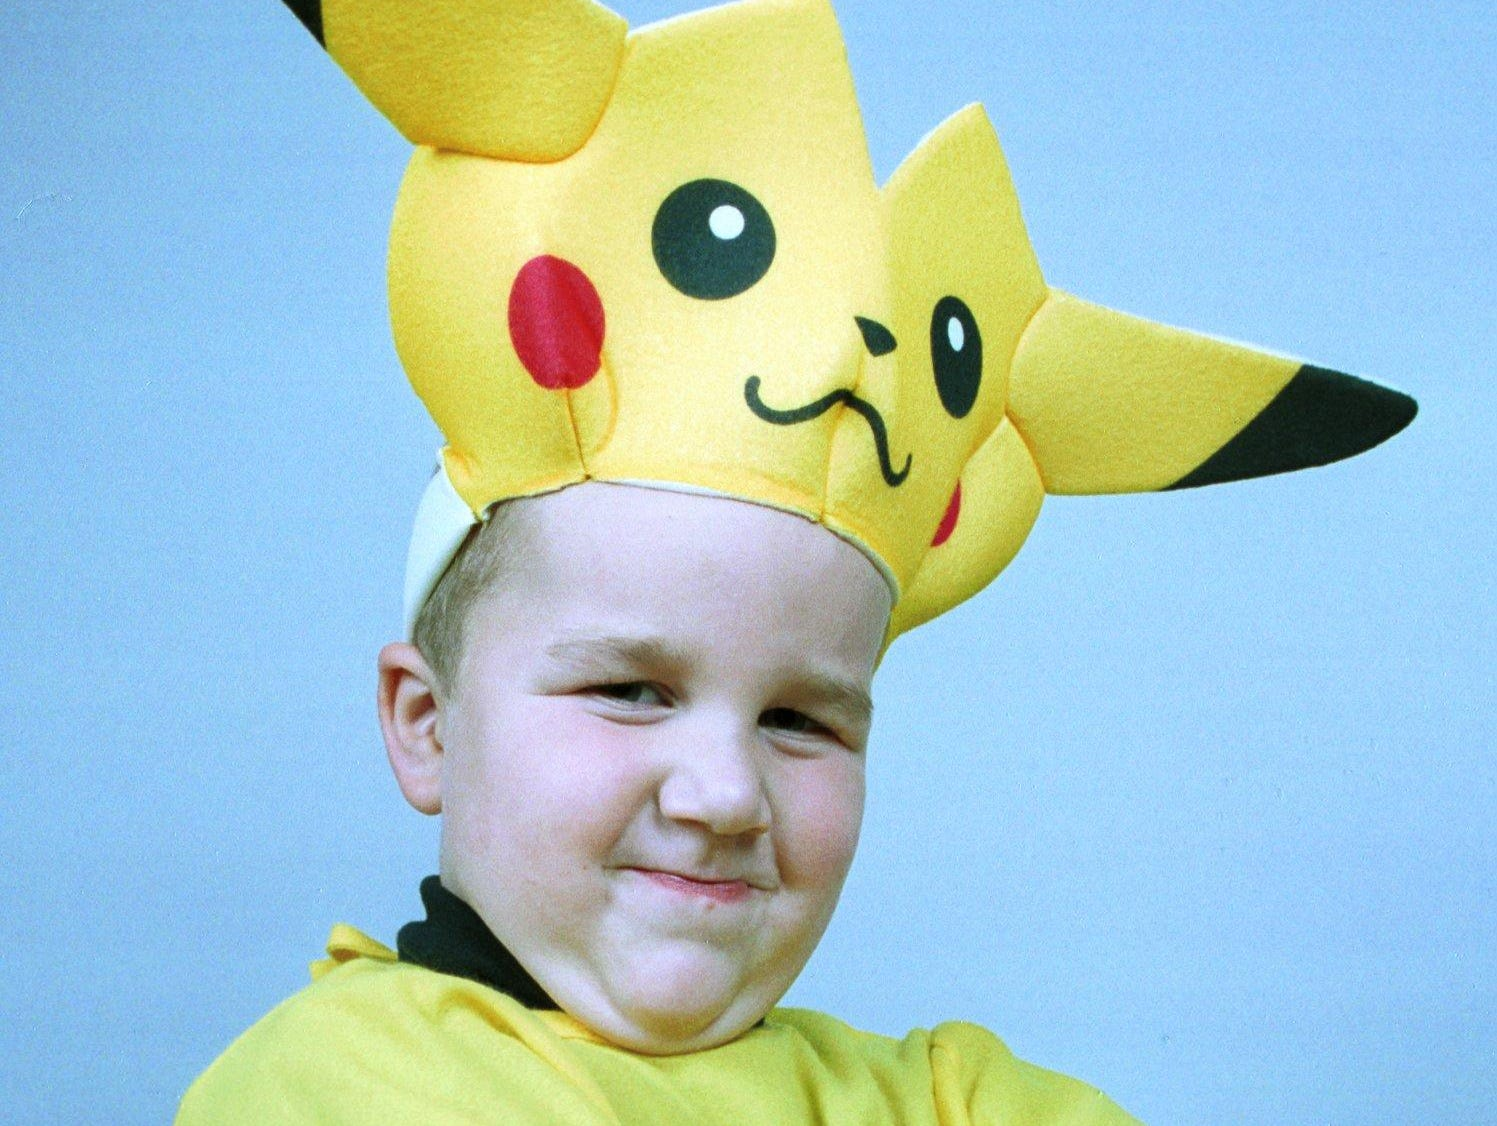 1999: Louis Pratt ,5, Endwell dressed as Pikachu, a popular pokemon.